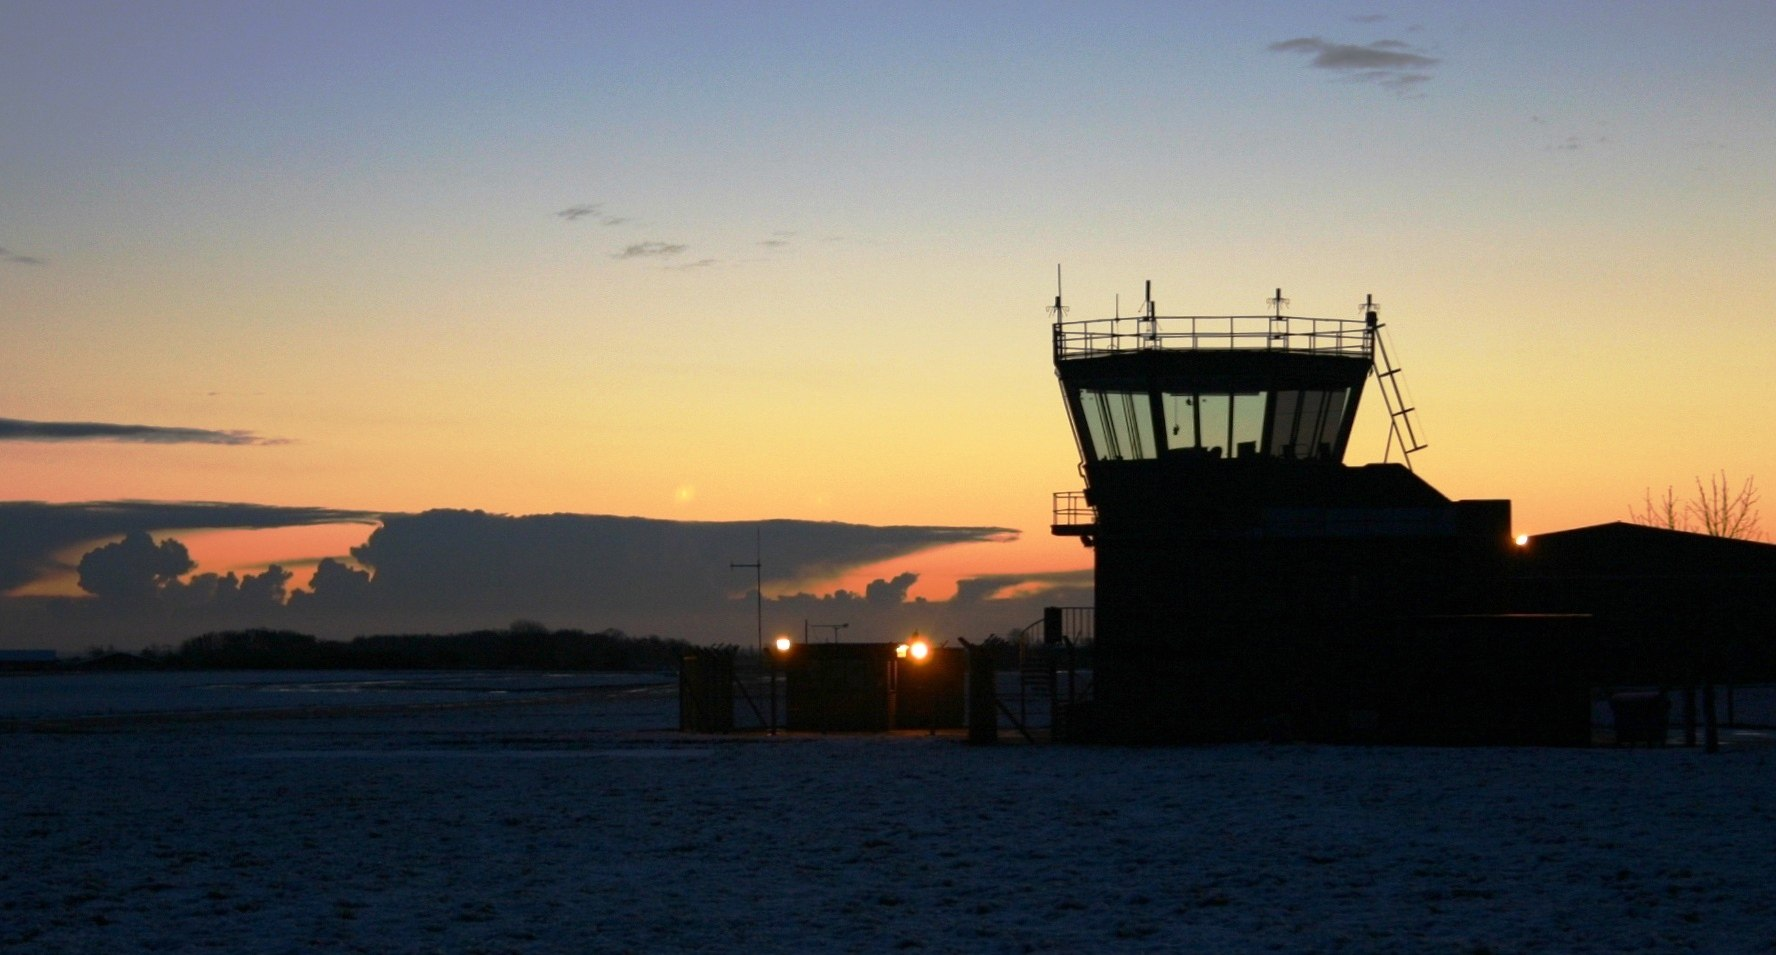 An ATC tower at dusk.